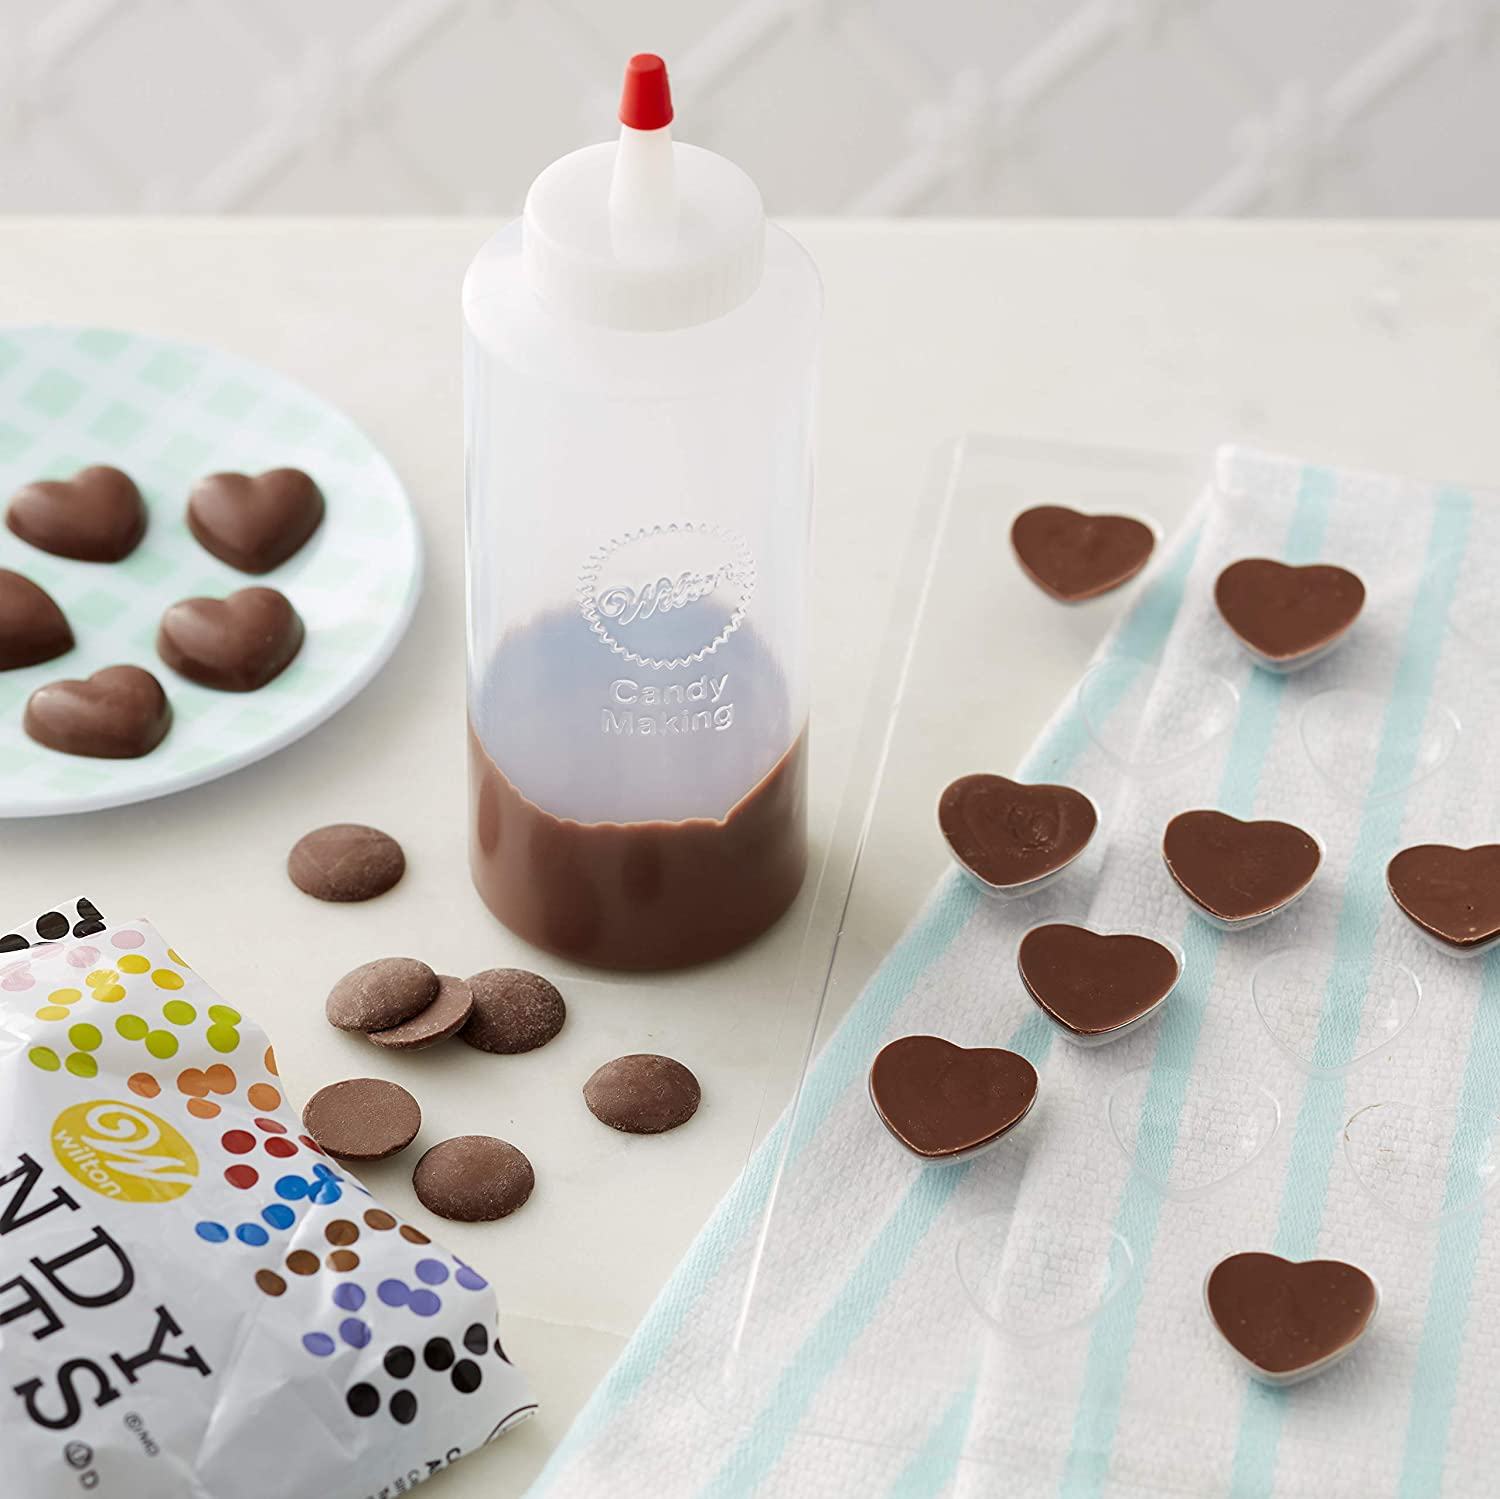 Wilton Regular Melting Decorating Squeeze Bottle: Candy Making Supplies: Kitchen & Dining